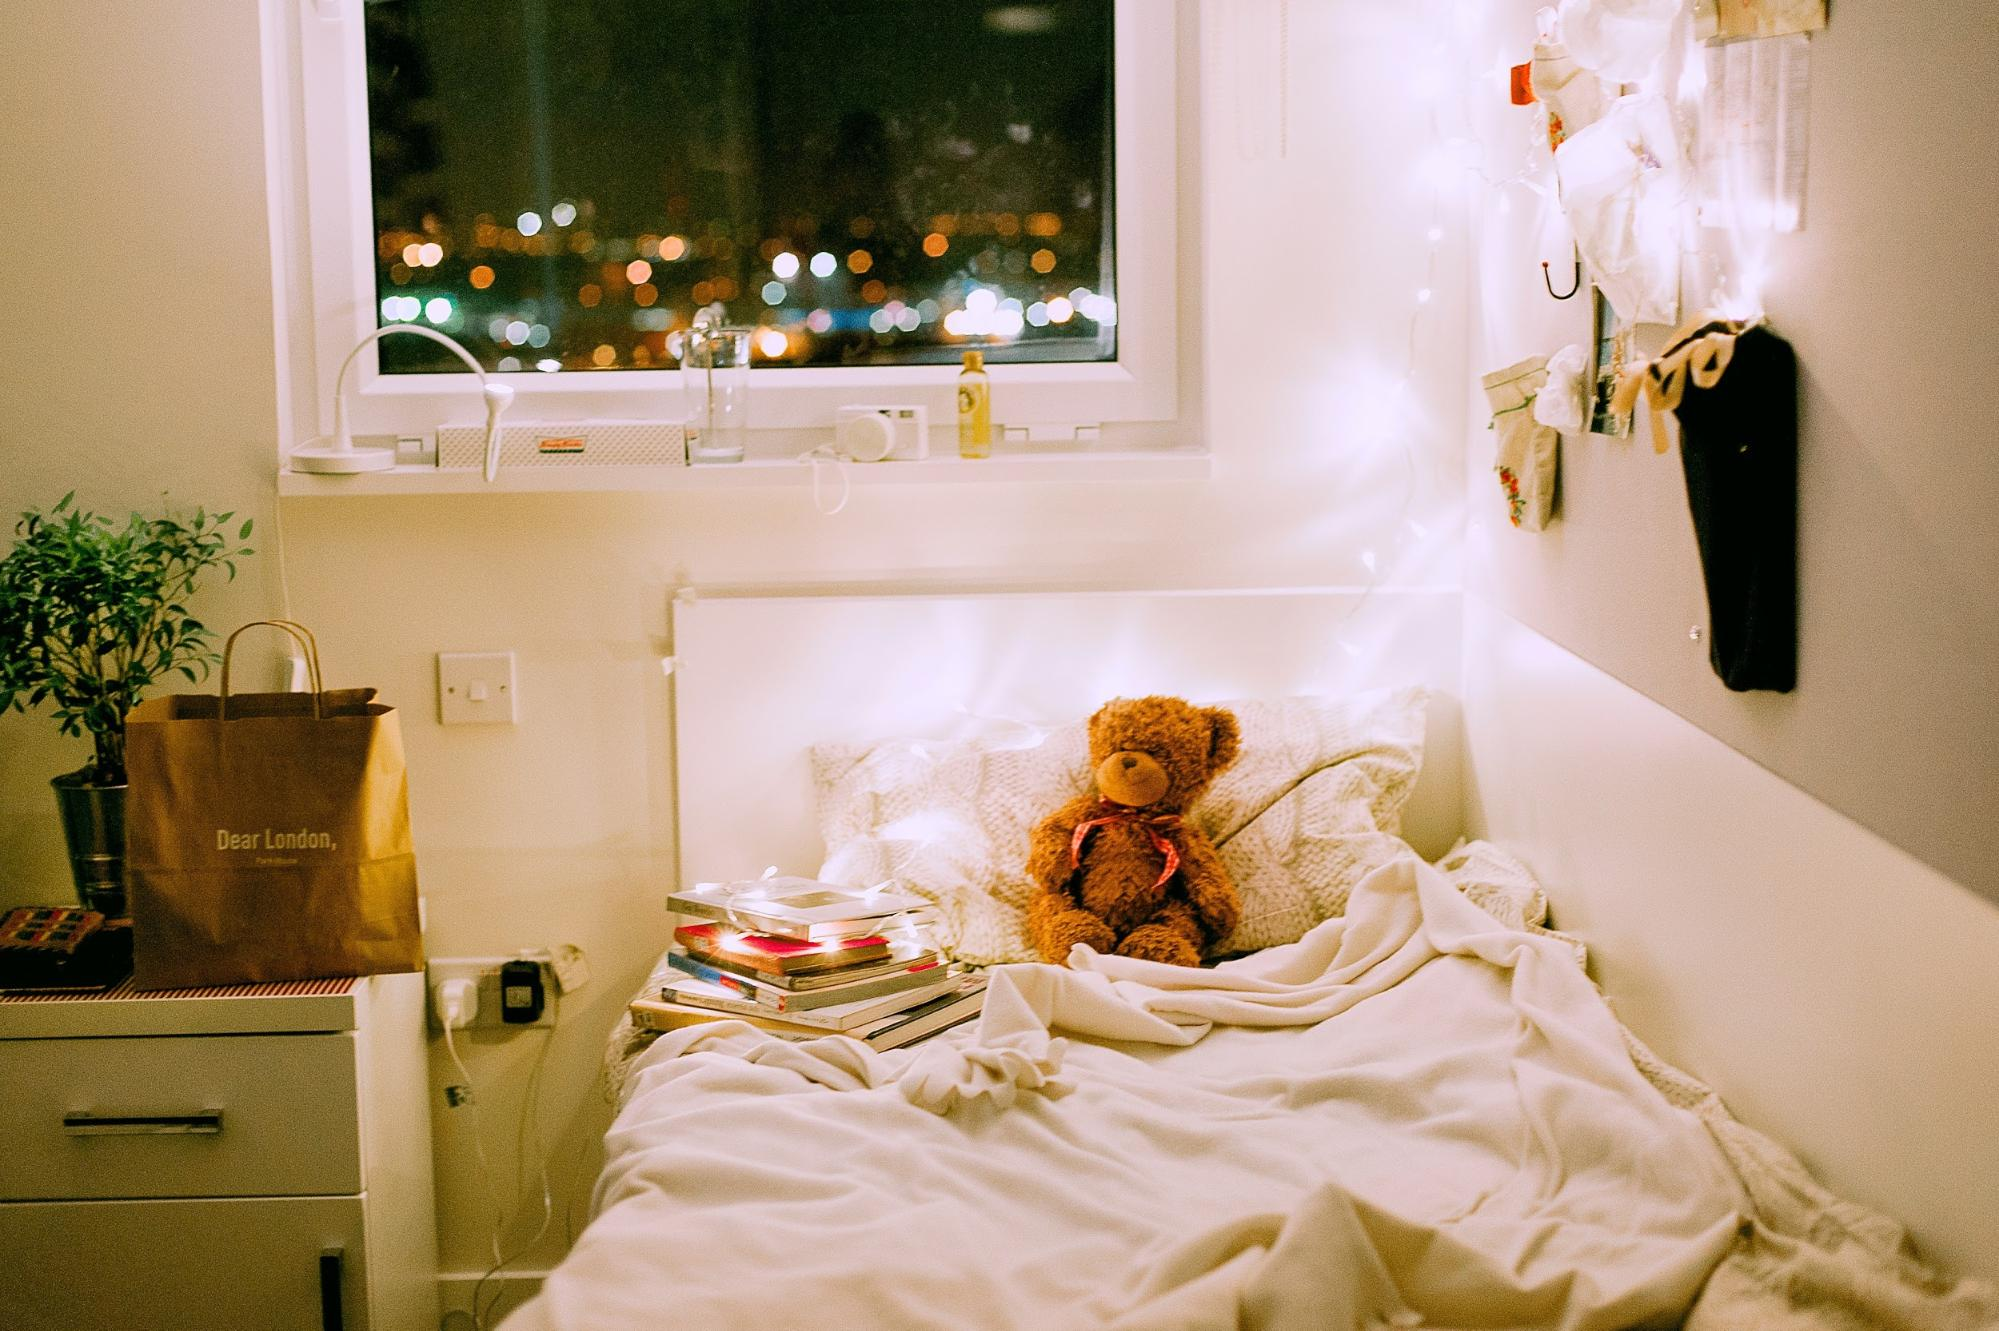 decorating your dorm room with lights and a teddy bear